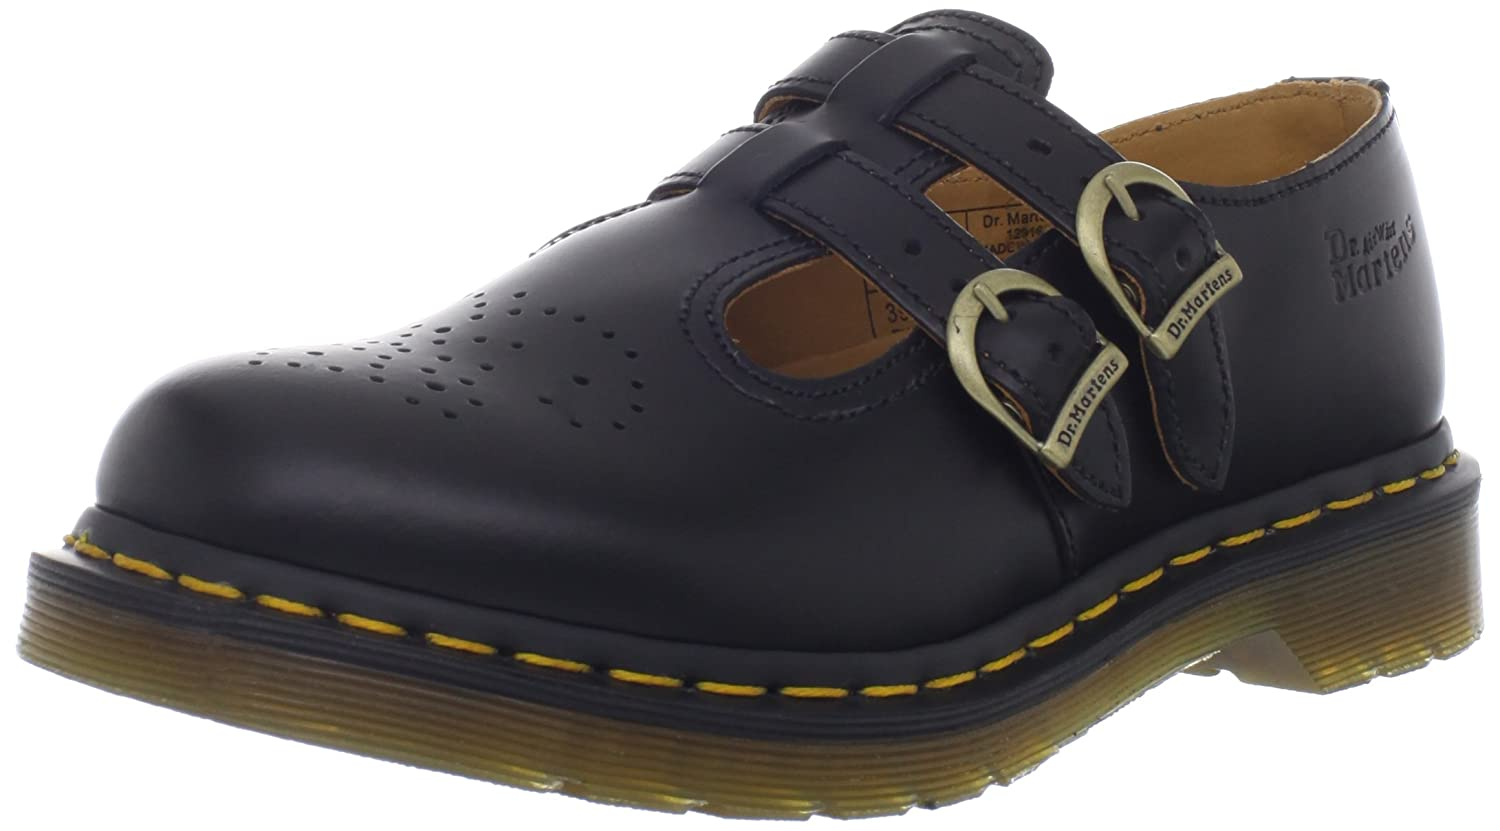 Dr Martens 8065 Mary Jane Femme Chaussures Noir